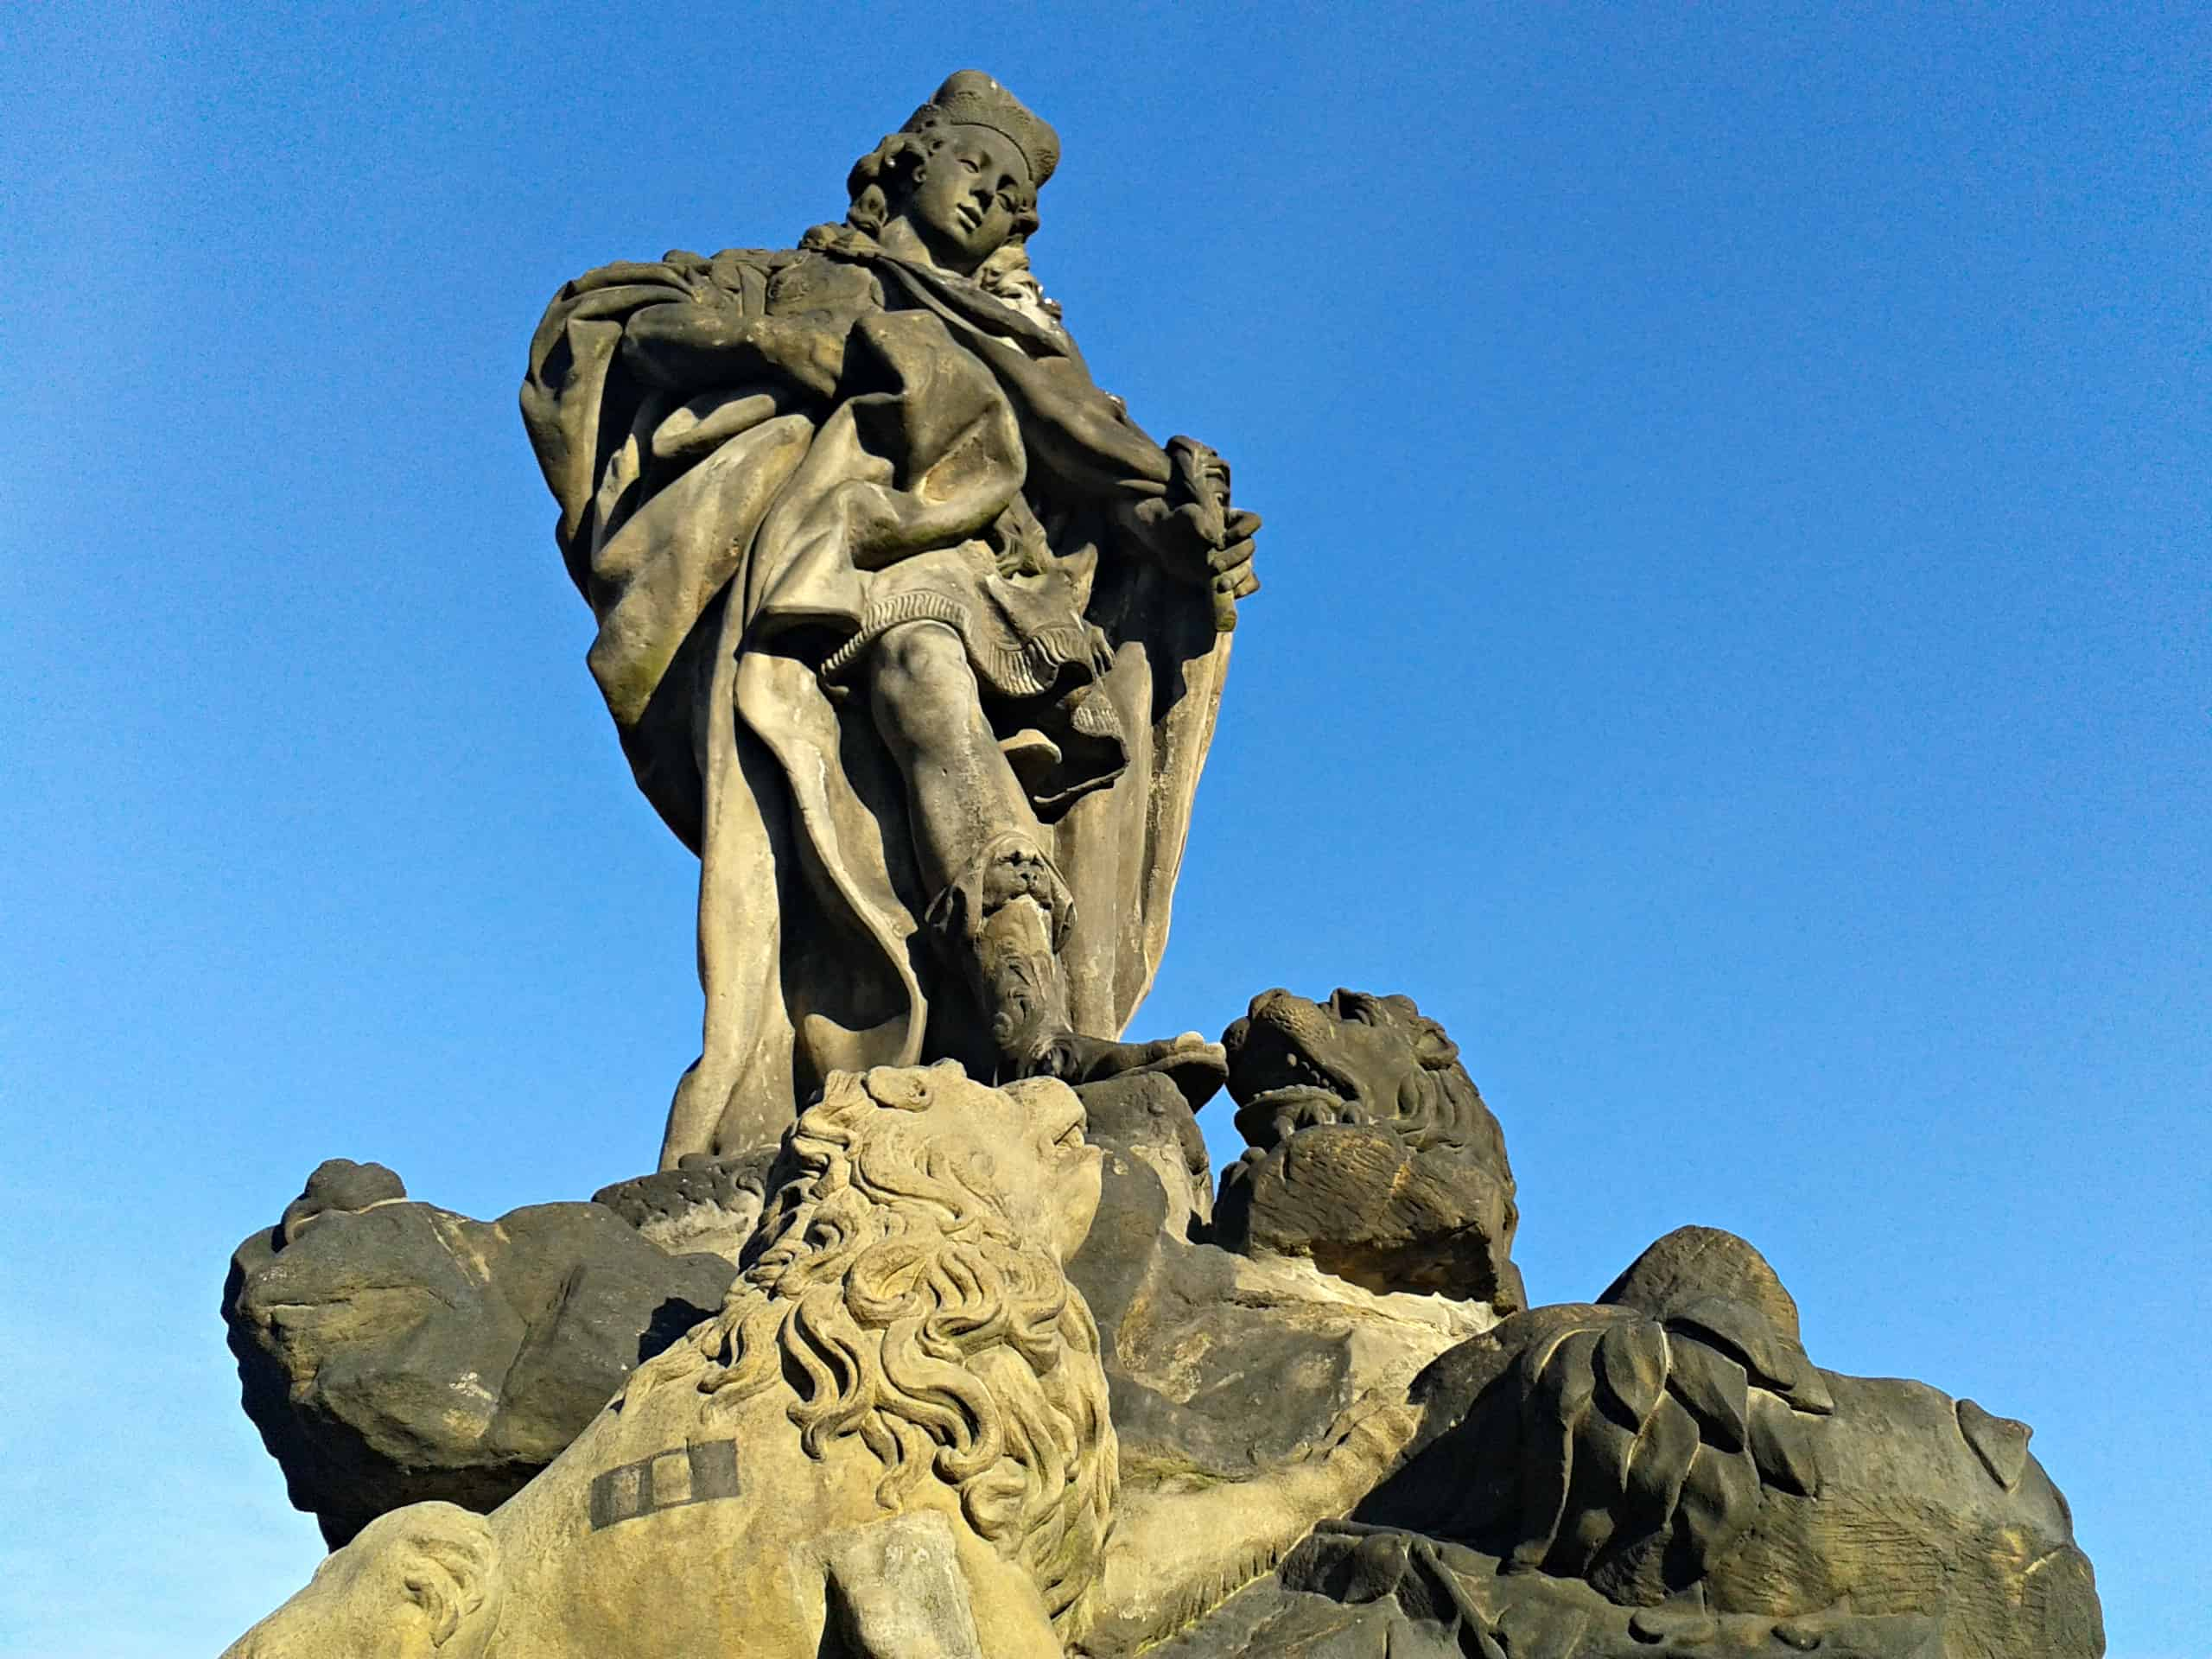 St. Vitus and his lions